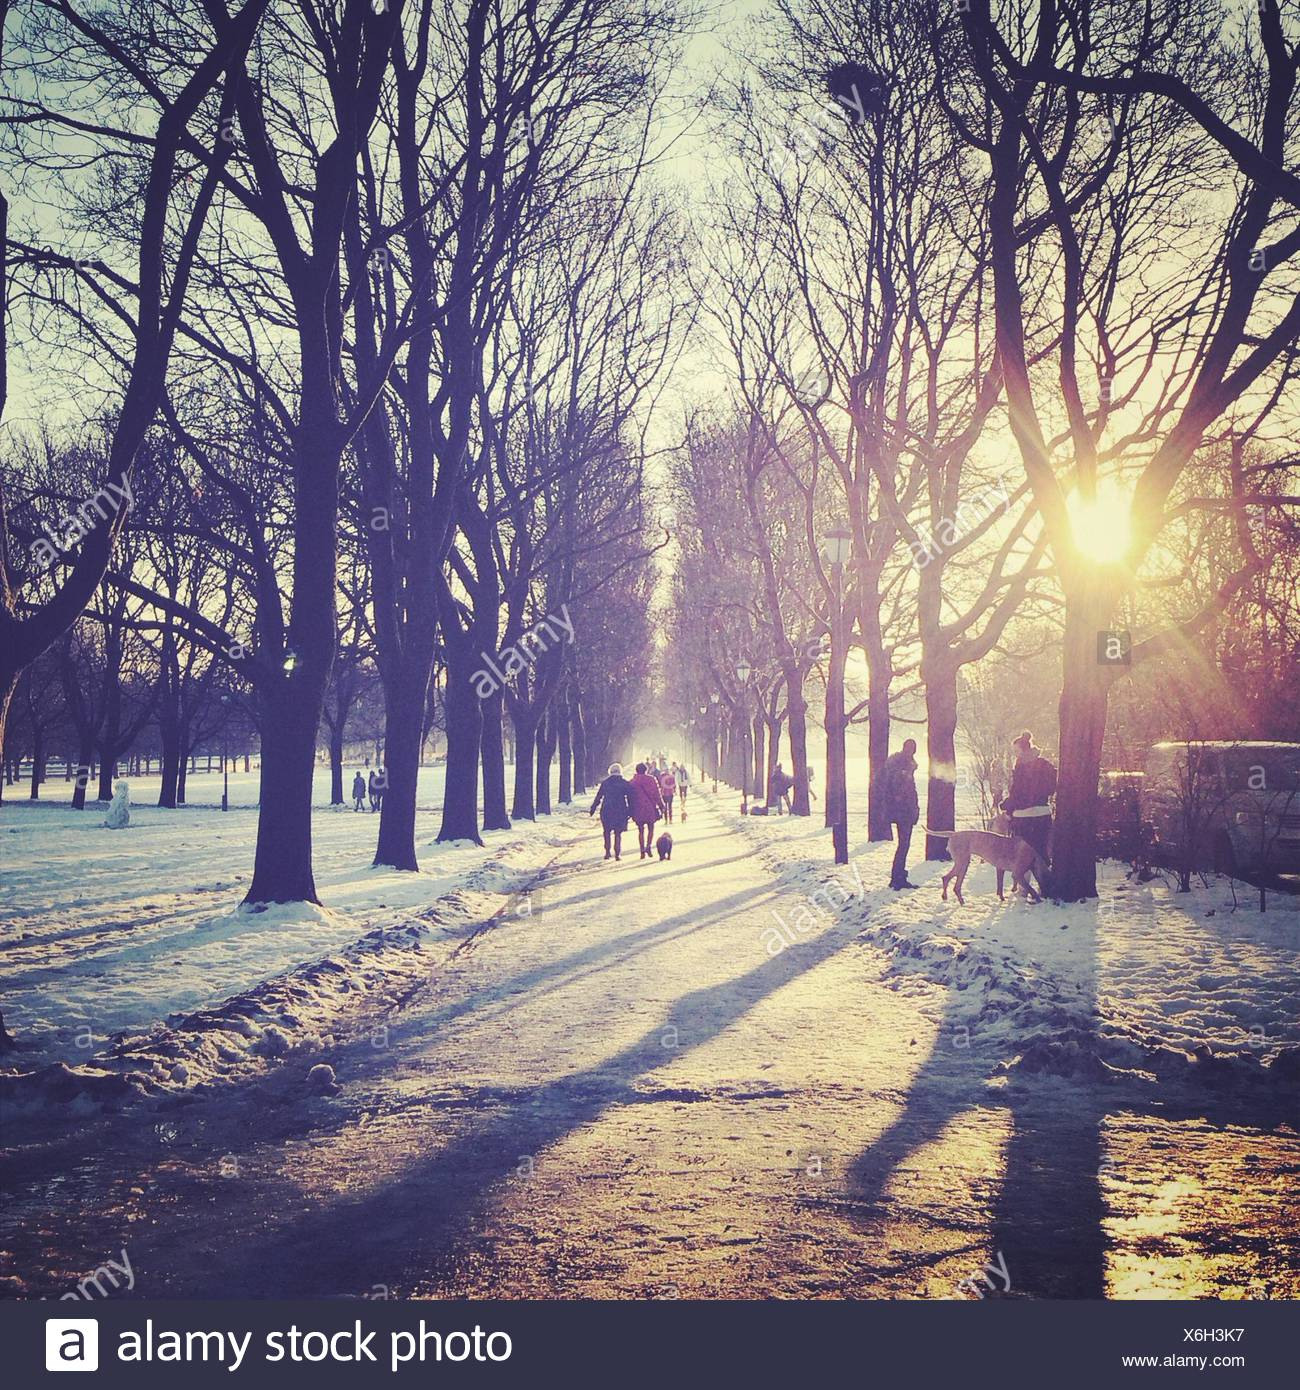 Winter in park - Stock Image